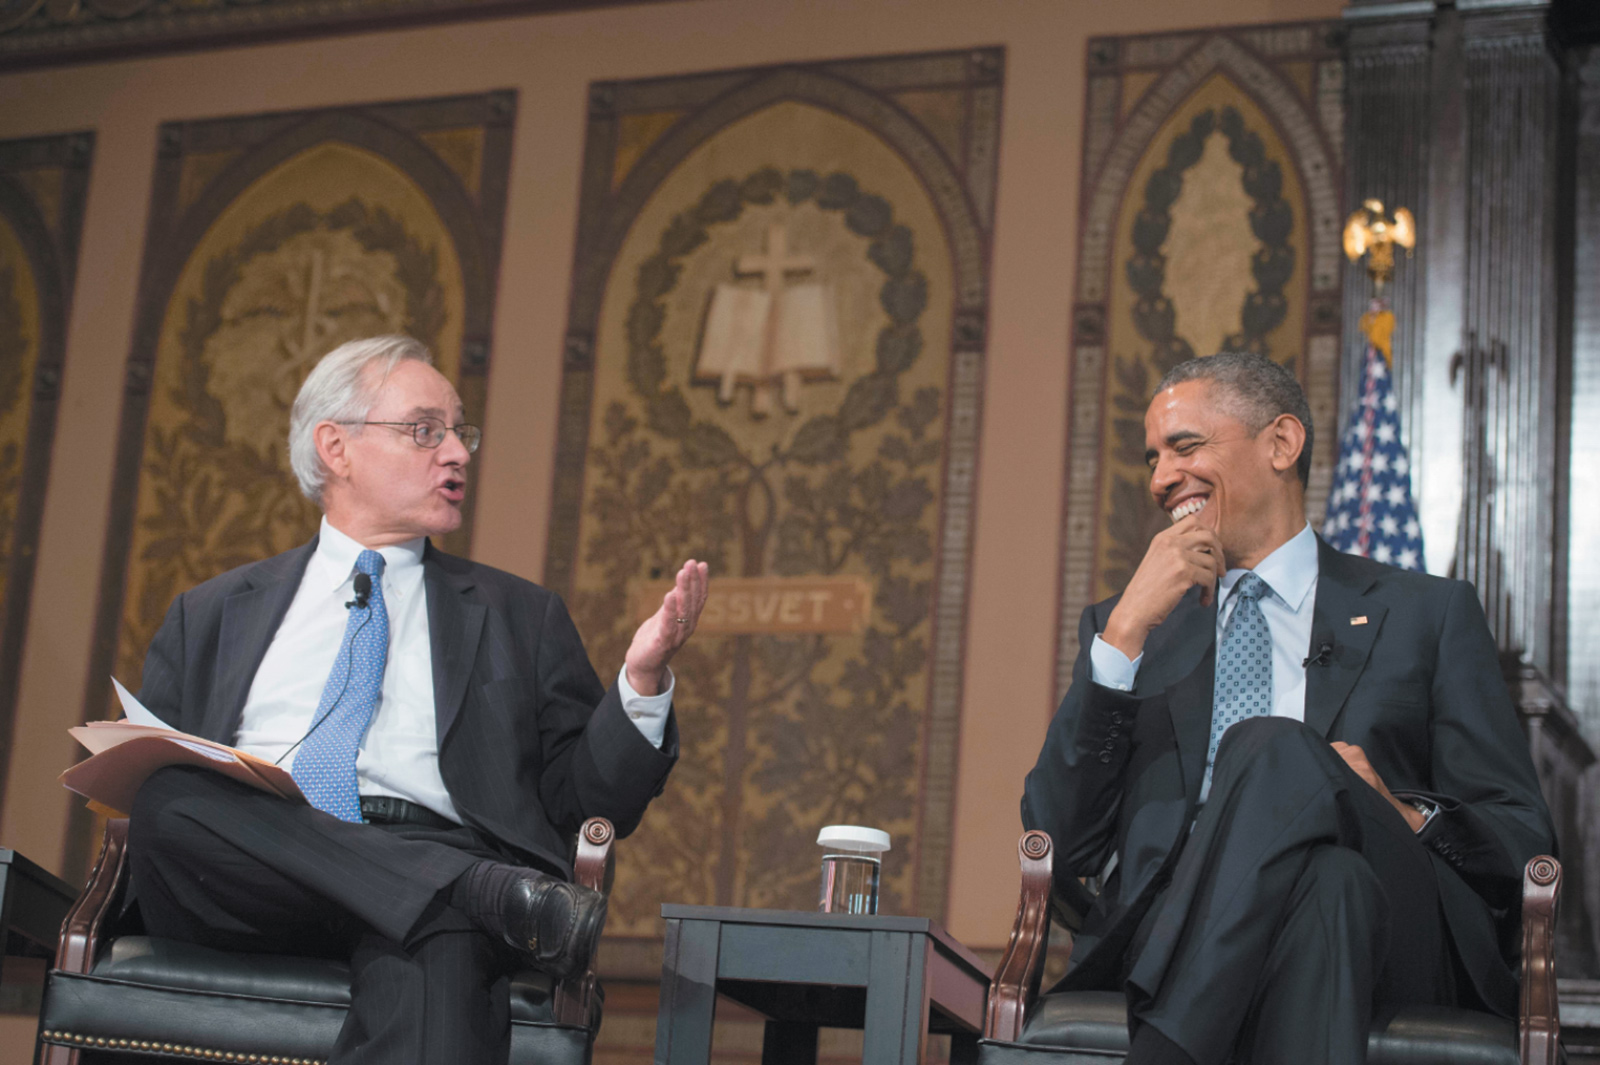 E. J. Dionne with President Obama at the Catholic-Evangelical leadership summit on overcoming poverty, Georgetown University, Washington, D.C., May 2015